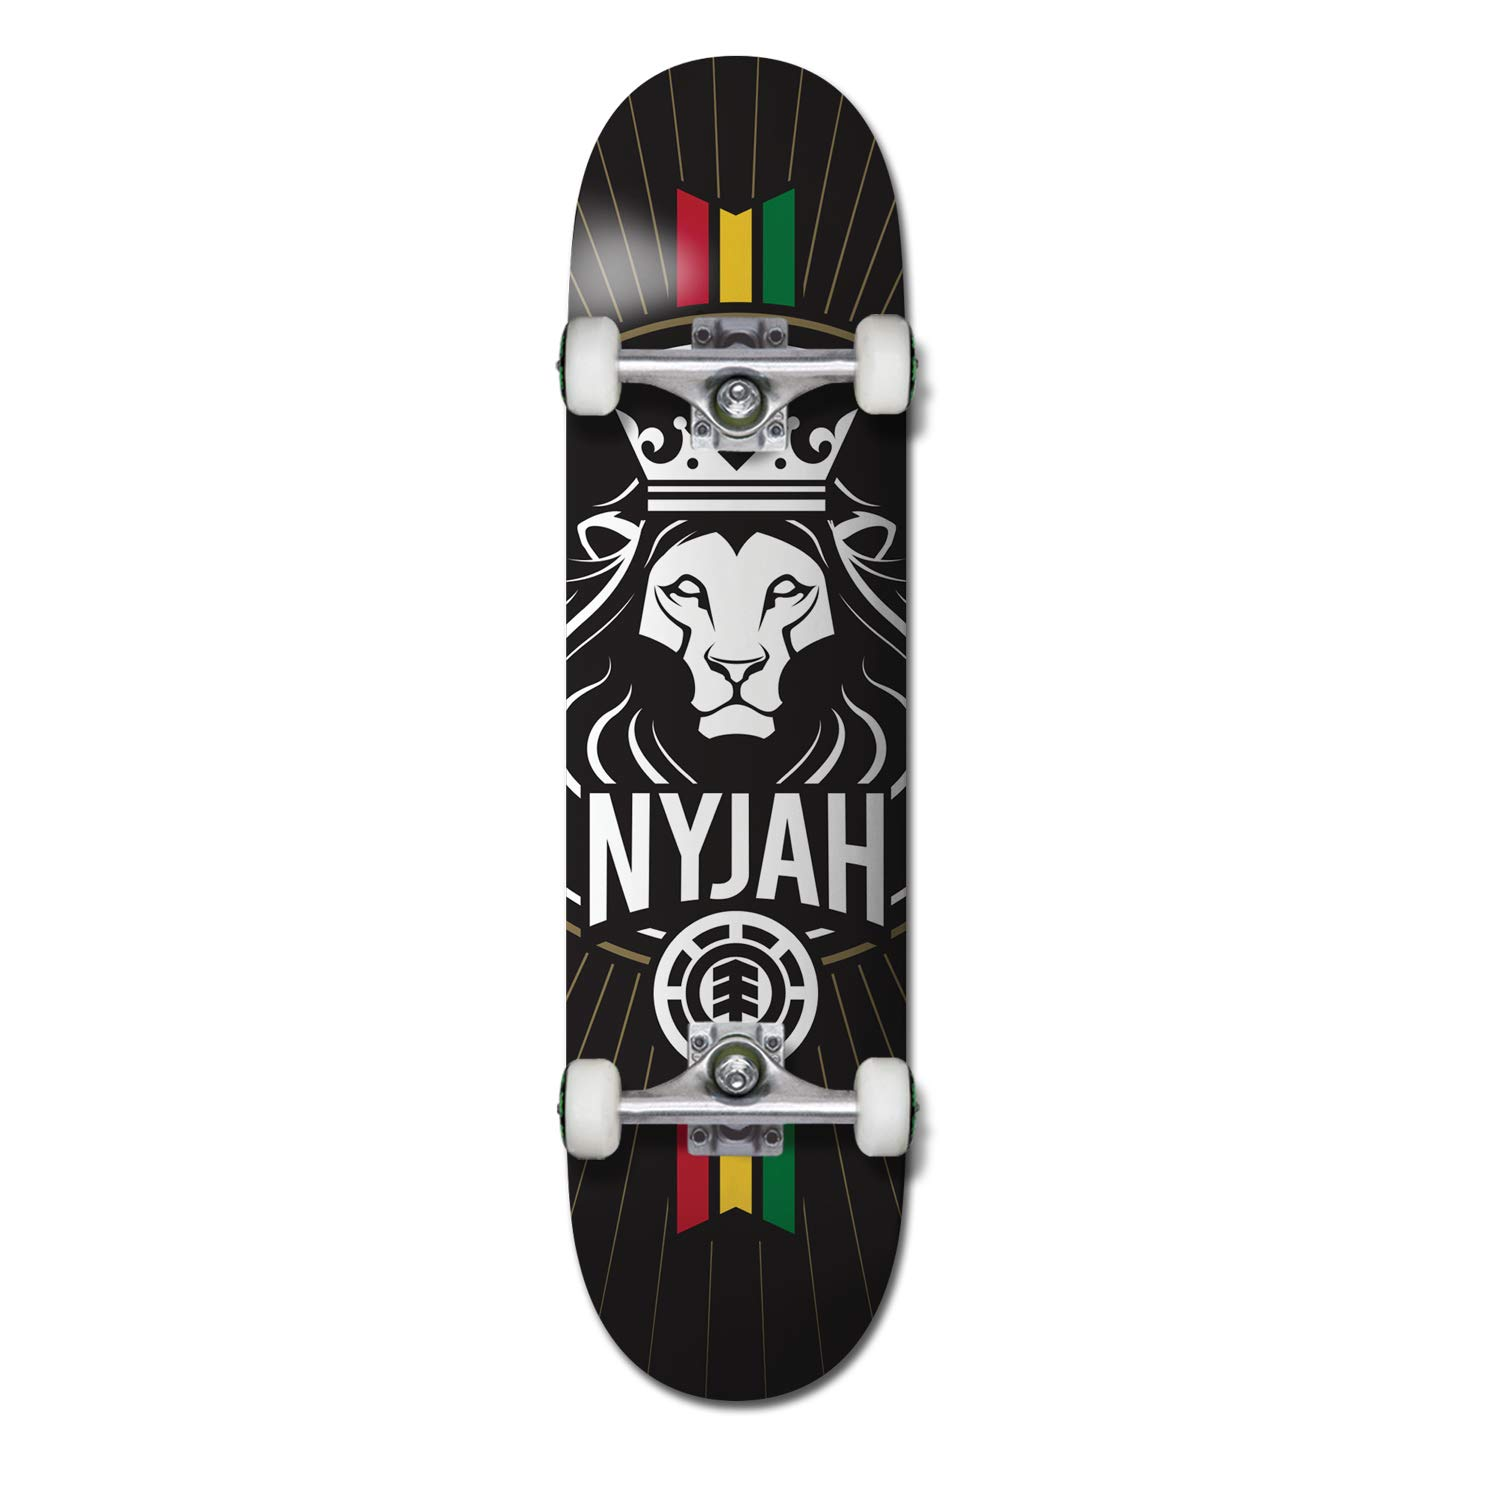 2f2dda21cd4 Amazon.com : Element Nyjah Crown Complete Inch Complete Skateboard Multi  Colored 7.8 : Sports & Outdoors